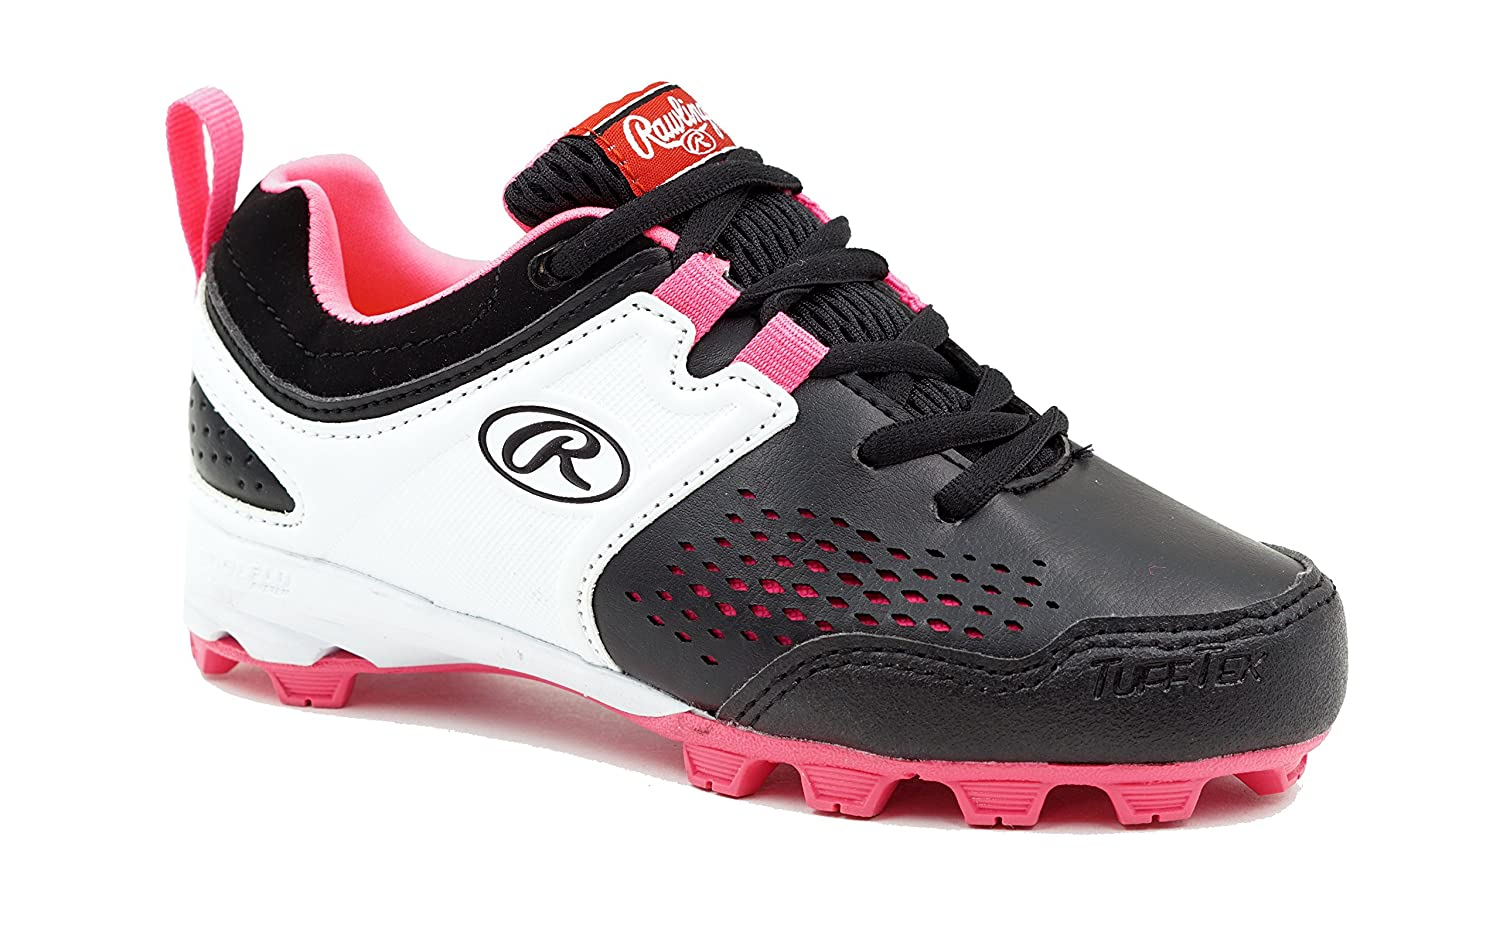 Rawlings Girls' Clubhouse Baseball Shoe, Black/Pink, 2.5 Child US Little Kid 5561GBKPK